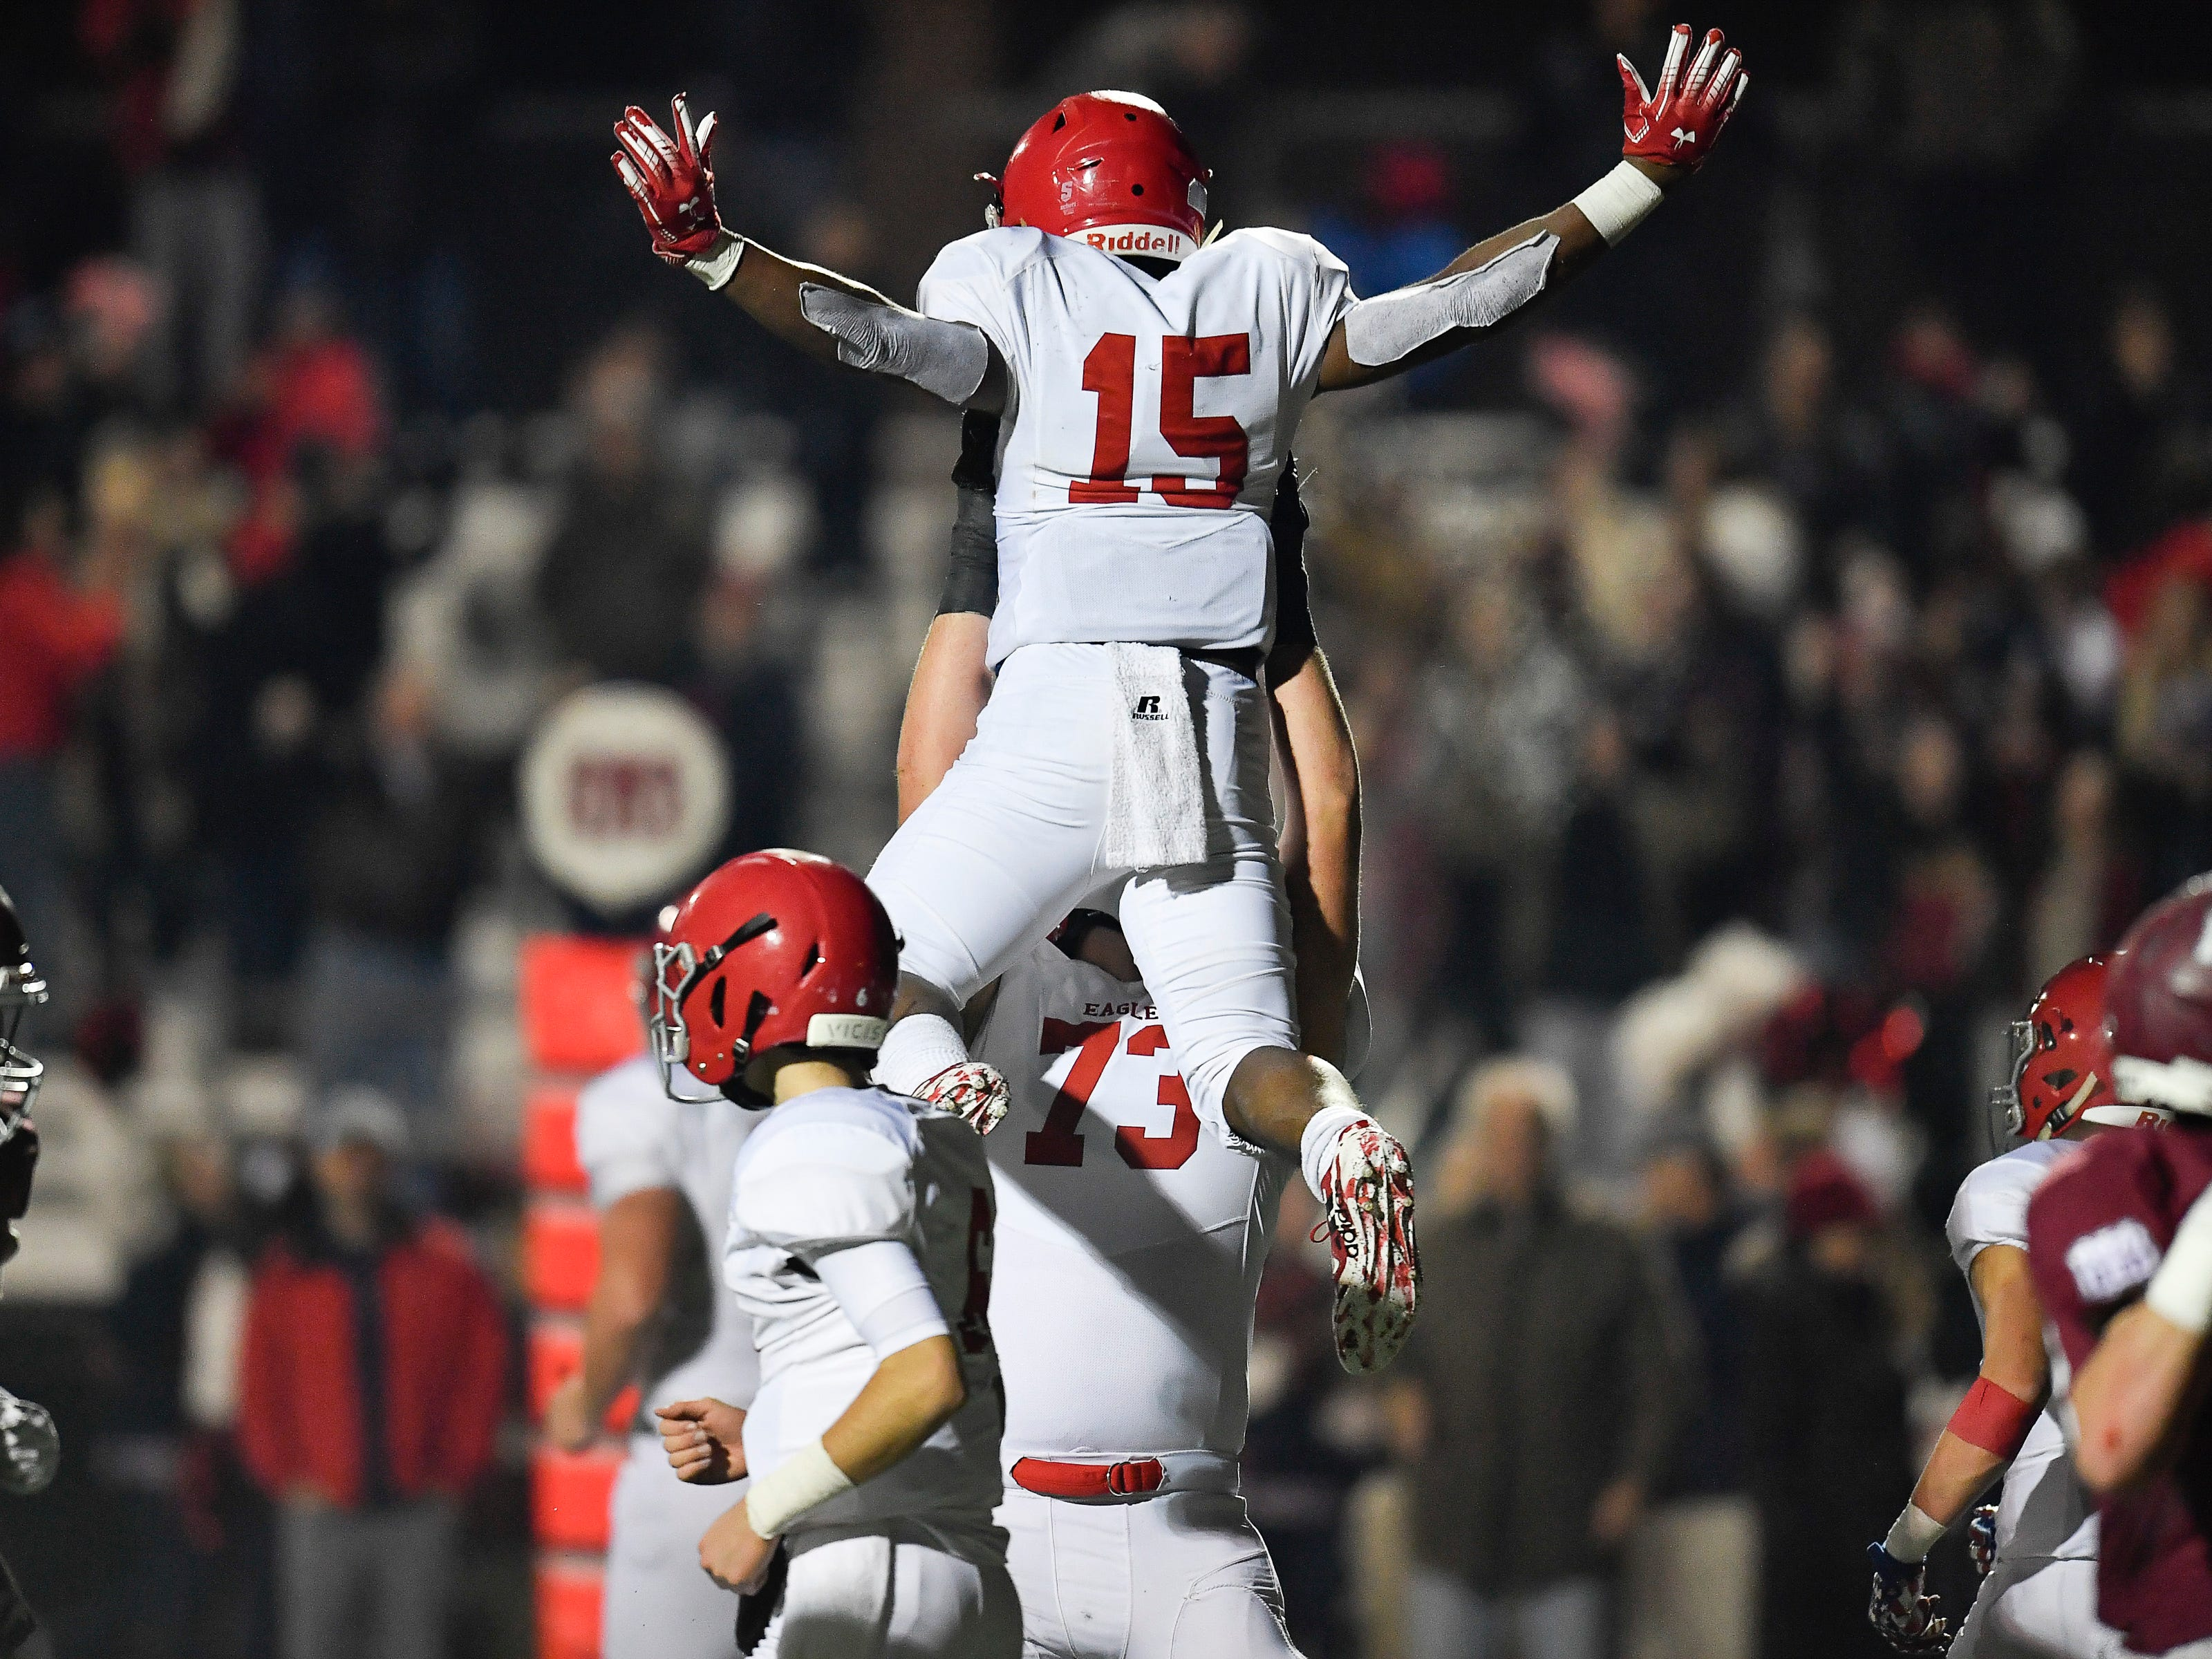 Brentwood Academy running back Jordan James (15) celebrates his touchdown during the fourth quarter of their 2018 Division II Class AAA State Football Playoff game against MBA at Montgomery Bell Academy Friday, Nov. 16, 2018, in Nashville, Tenn.